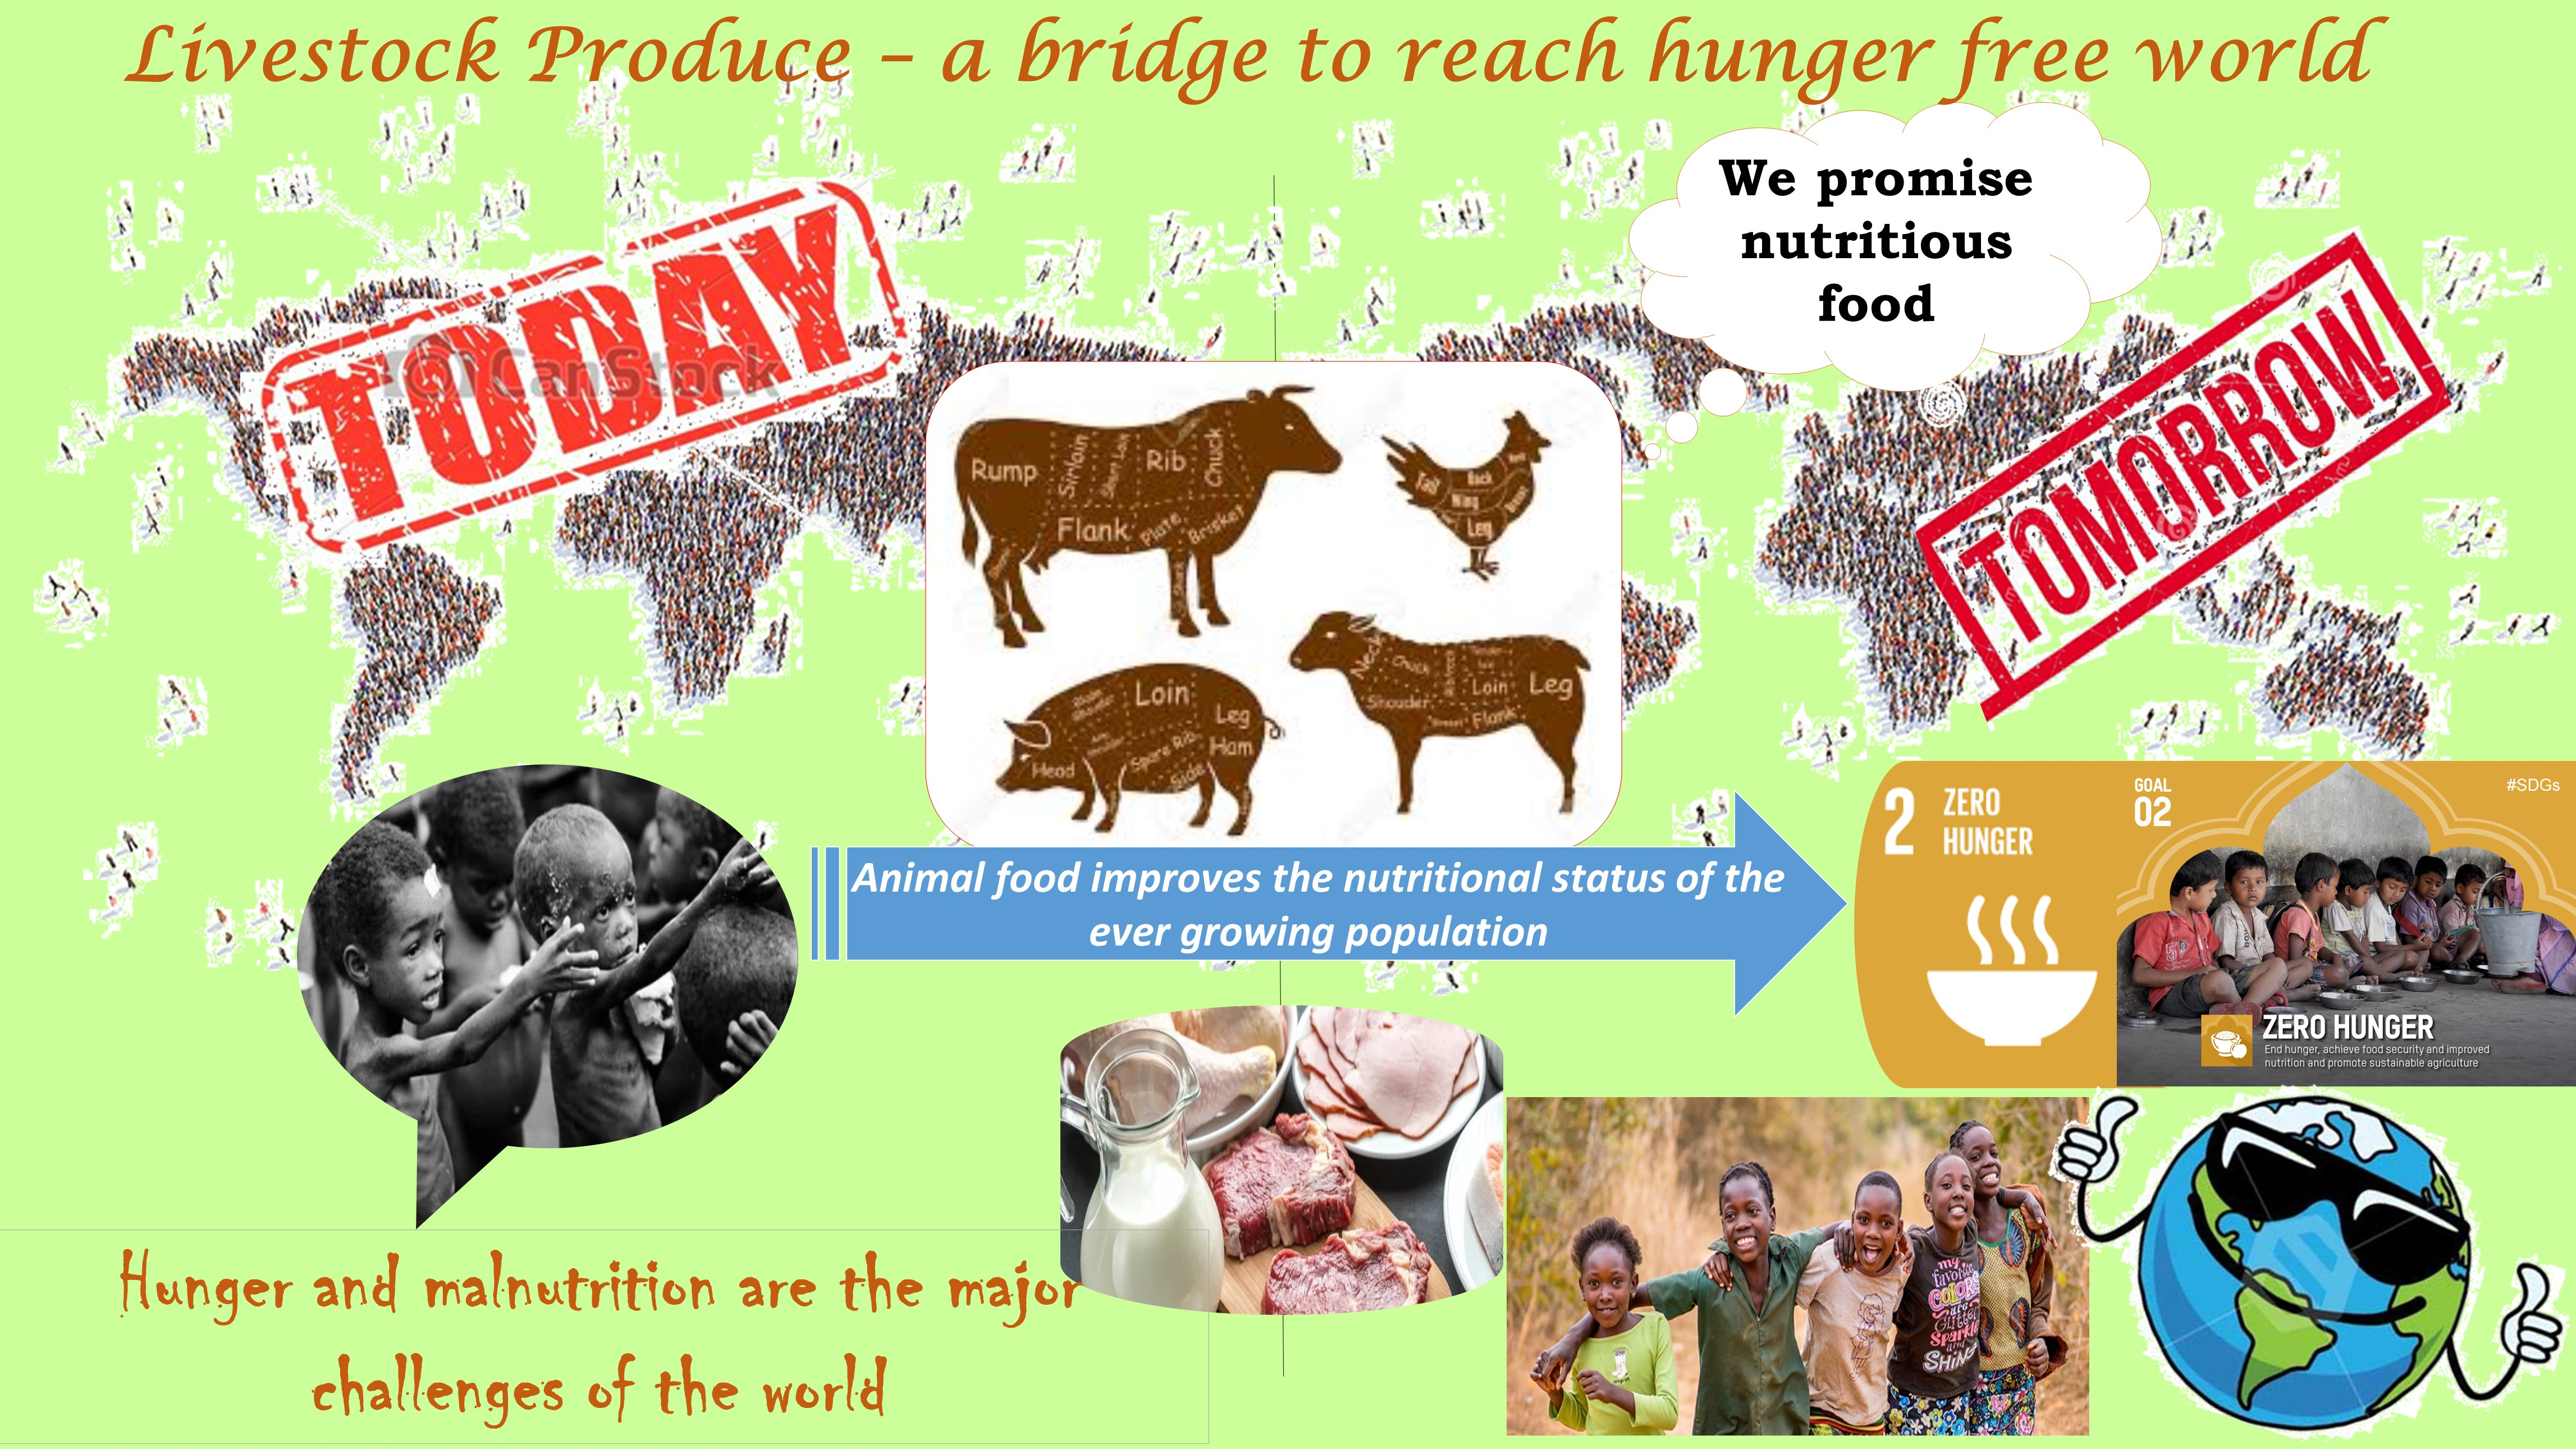 Livestock Produce – A Bridge to Reach a Hunger Free World